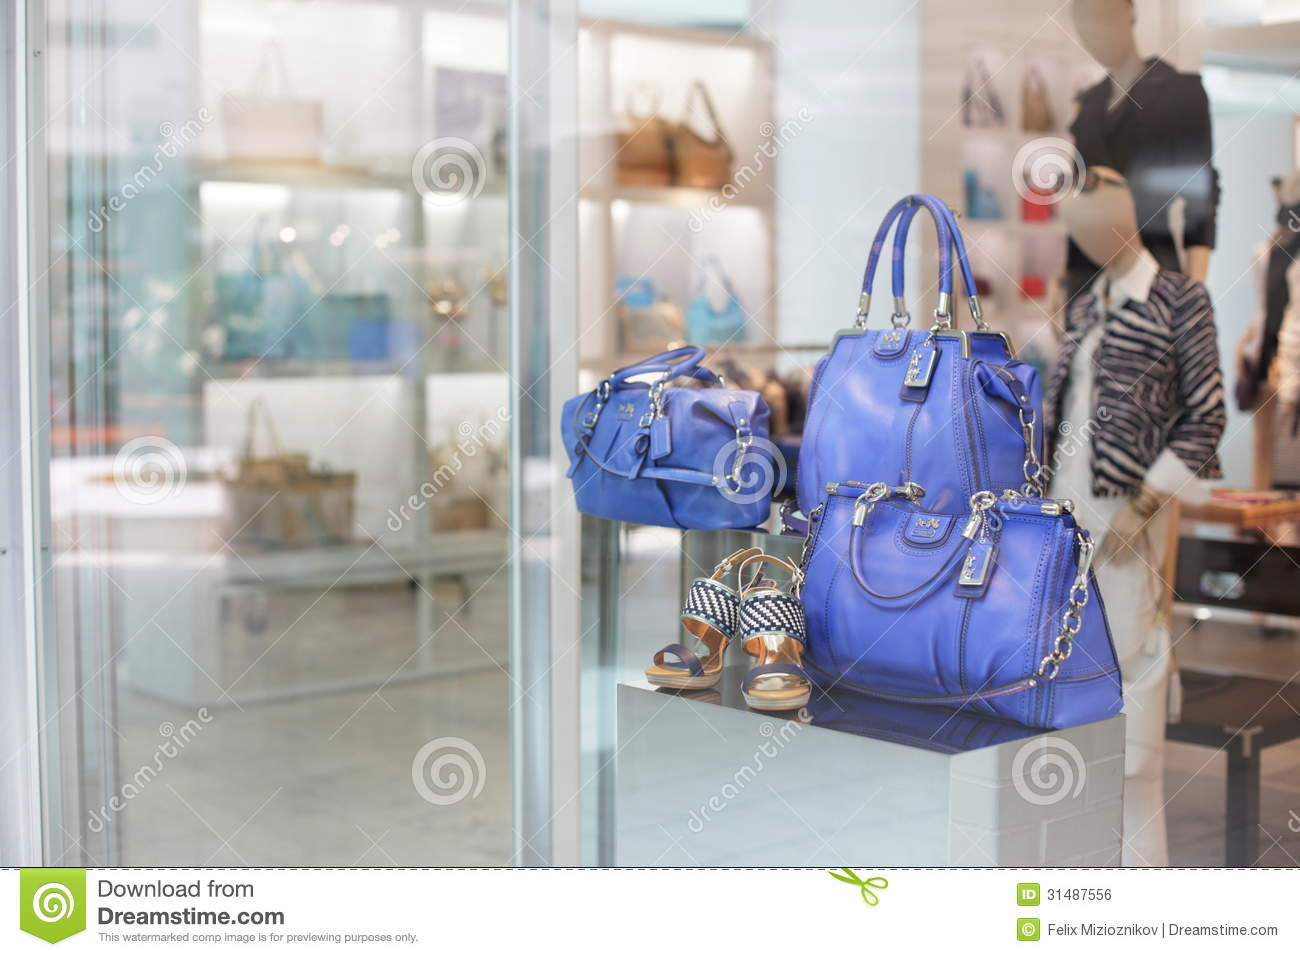 68b9ffccd766 Stock image of Coach leather handbags on display royalty free stock image